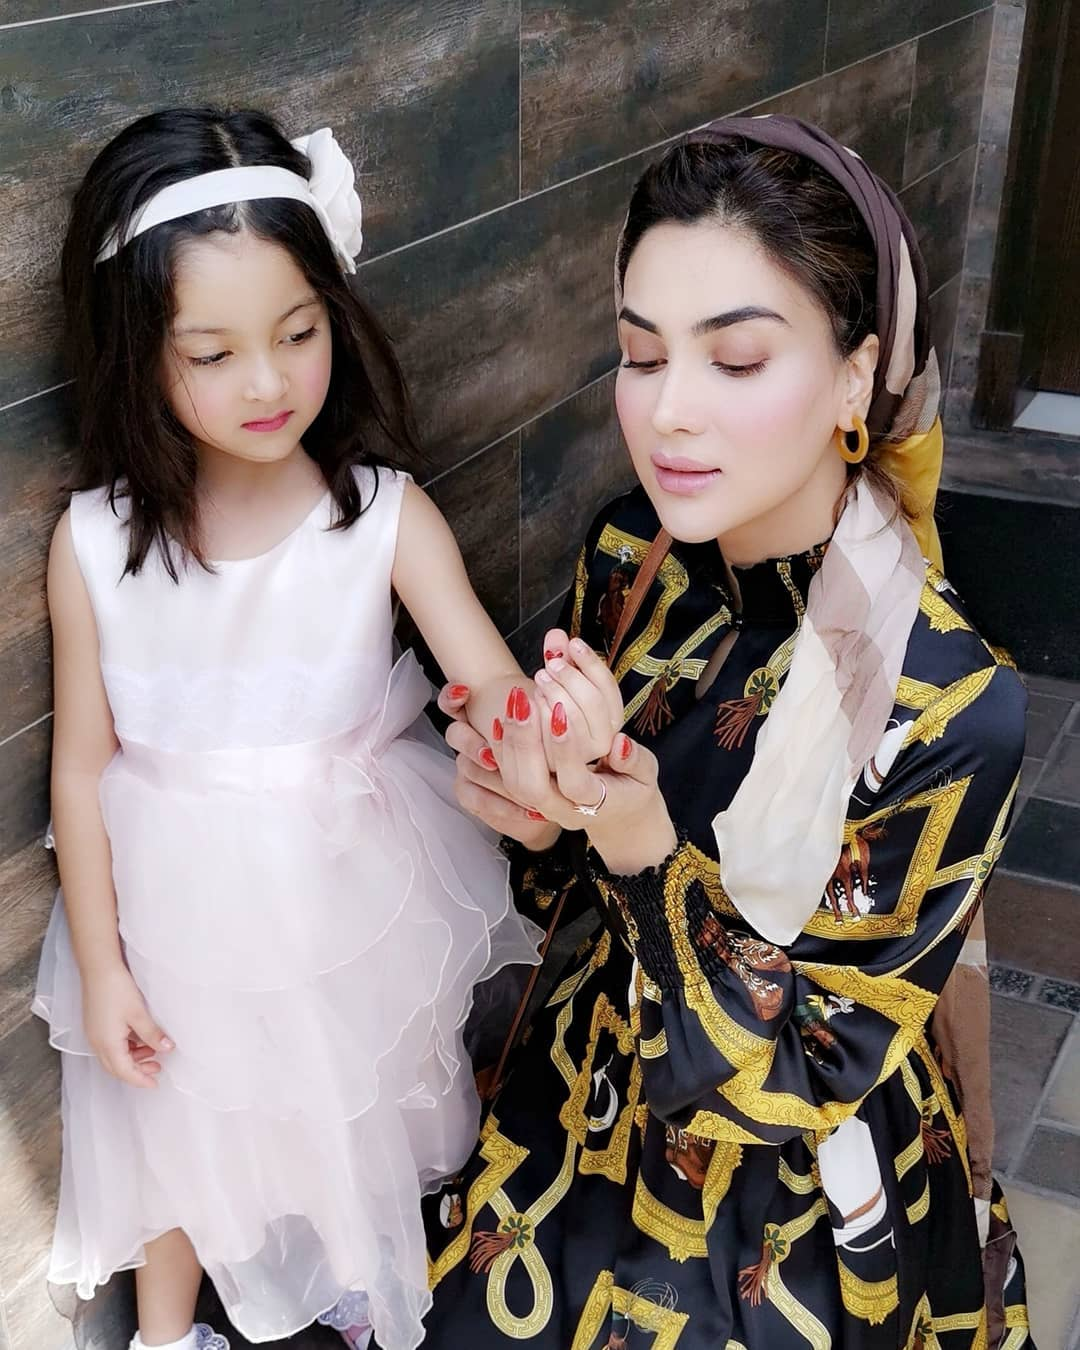 Fiza Ali Awesome Clicks with her Cute Daughter